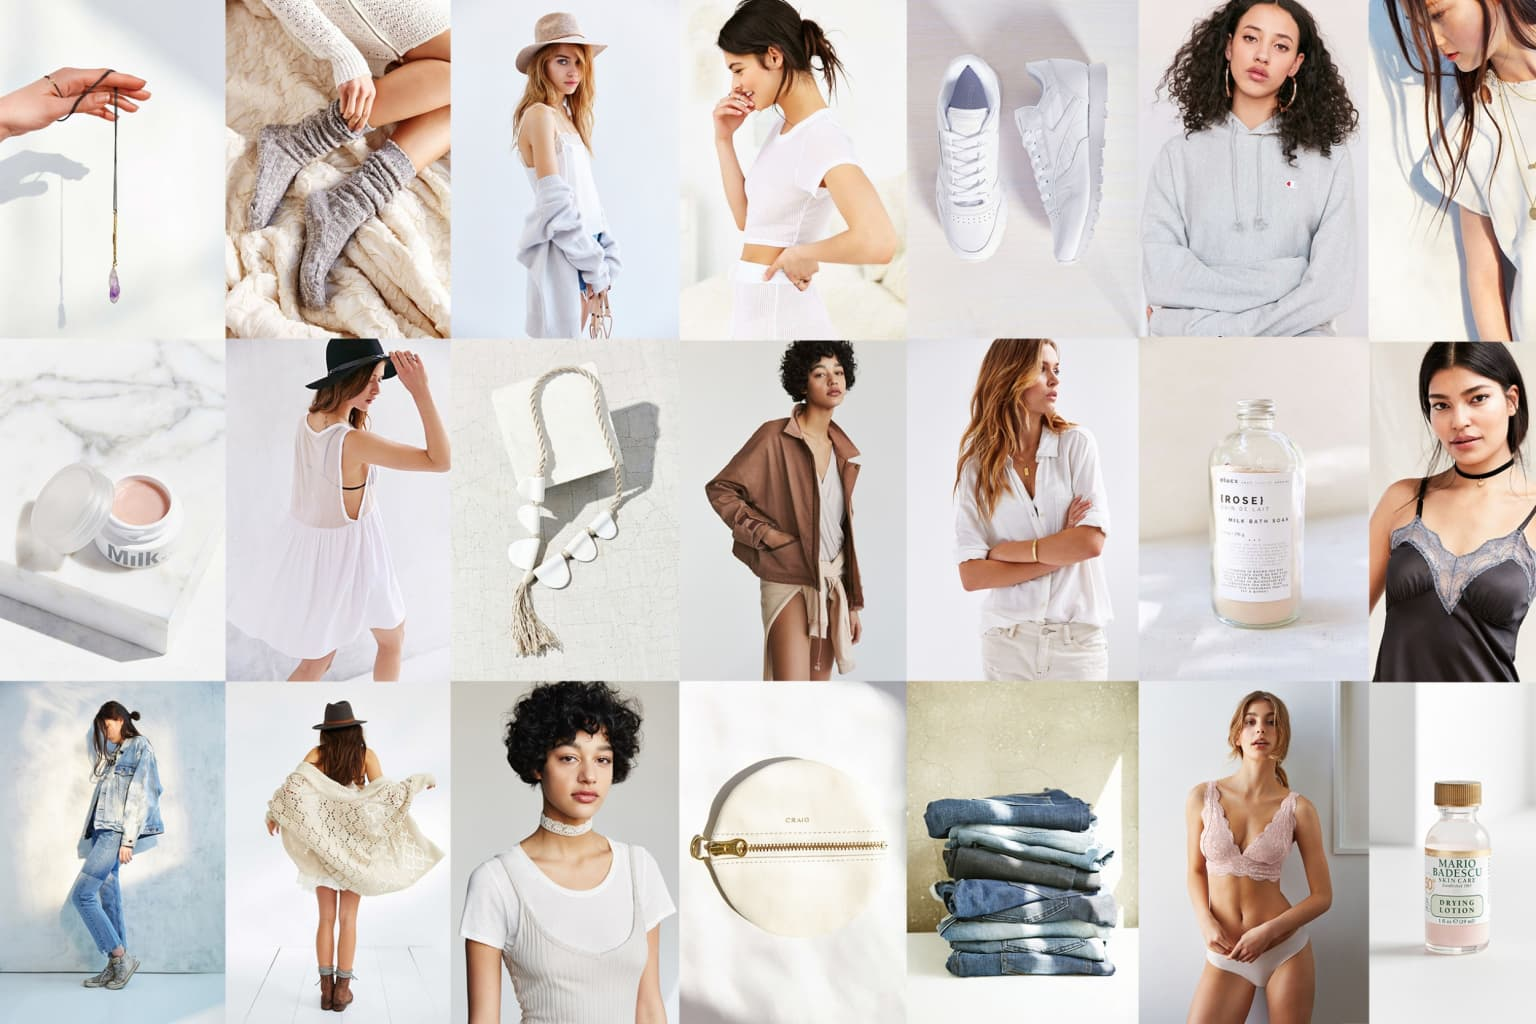 Urban Outfitters Brand Imagery + Marketing